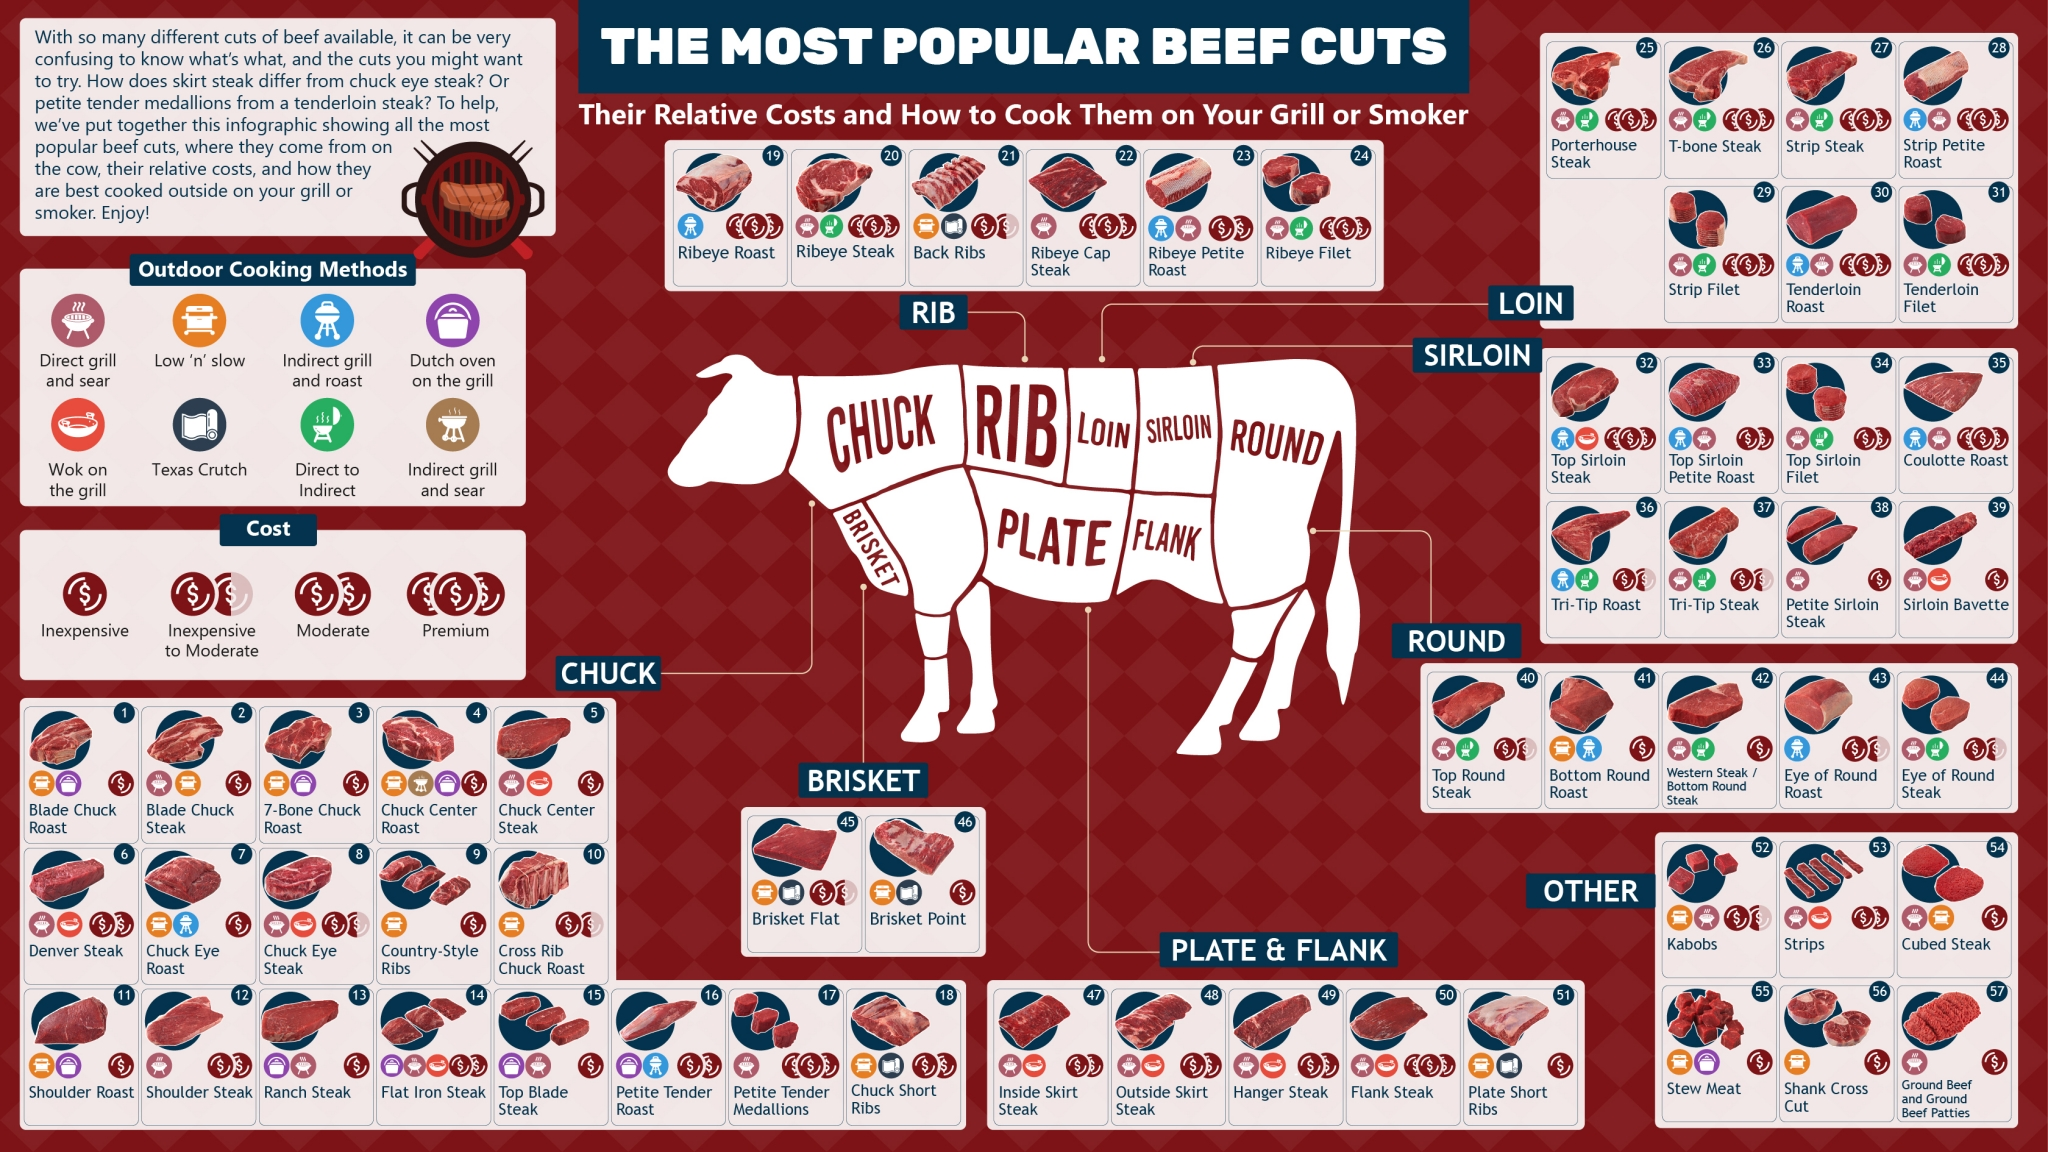 All the popular beef cuts, and how to BBQ them, in a handy chart